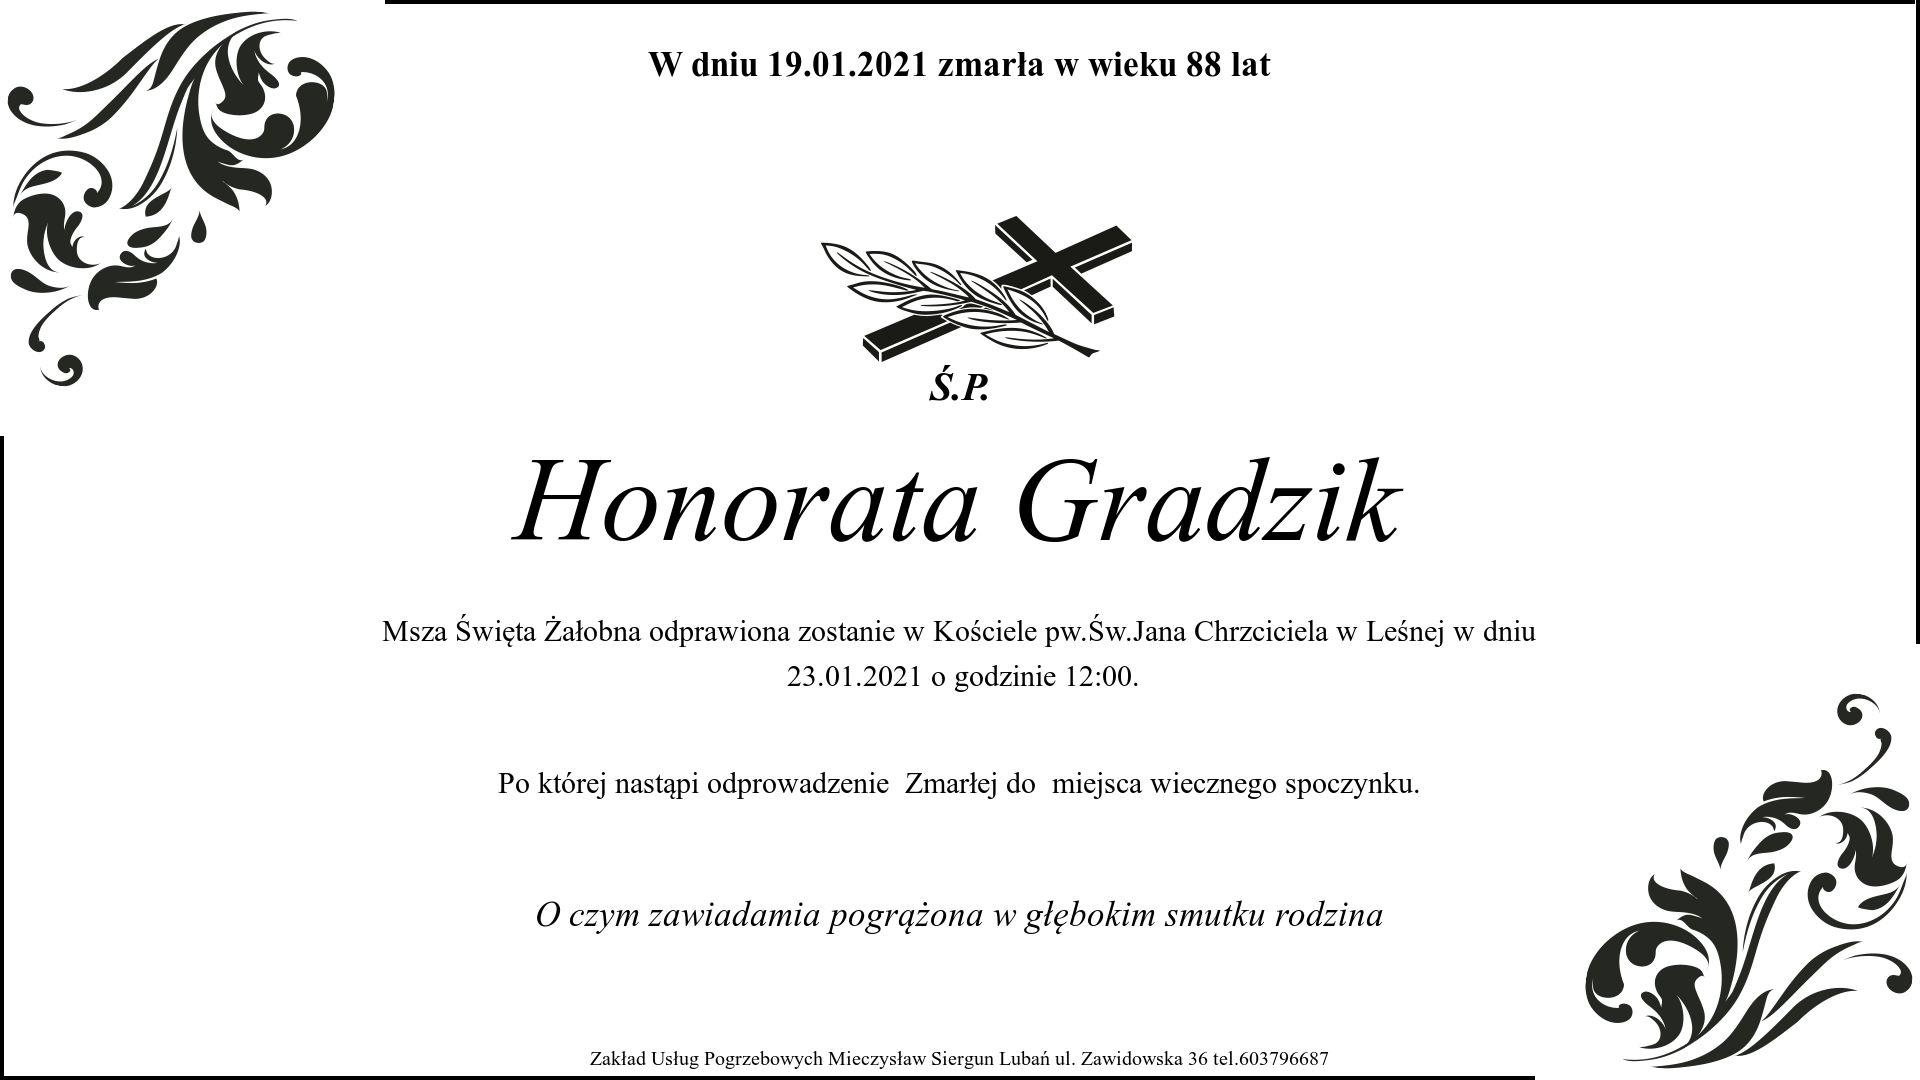 Honorata Gradzik